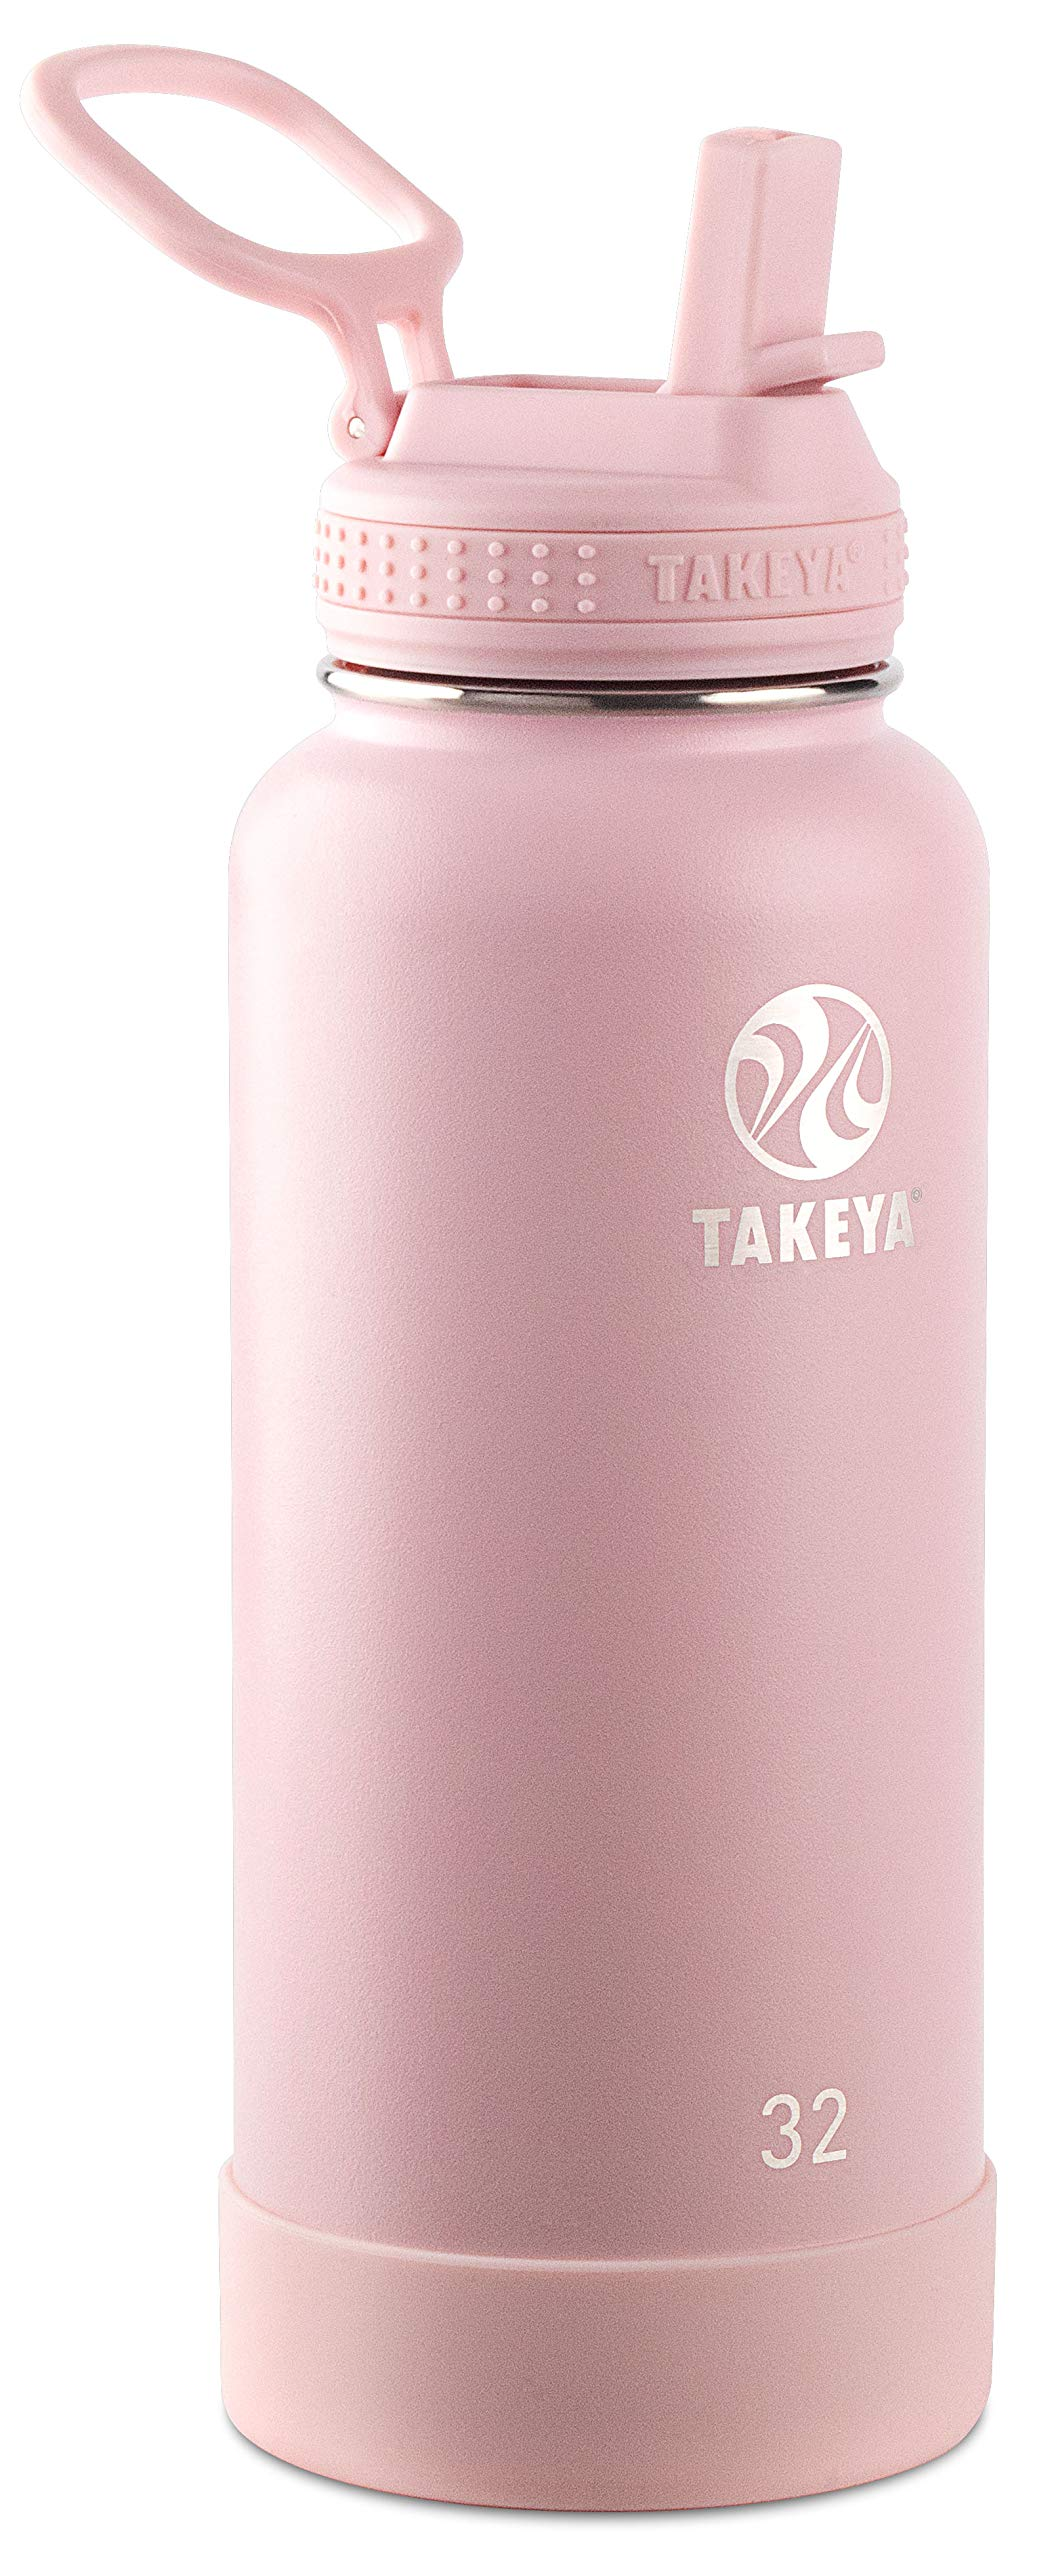 Takeya 51241 Actives Insulated Stainless Steel Bottle w/Straw Lid, 32oz Blush